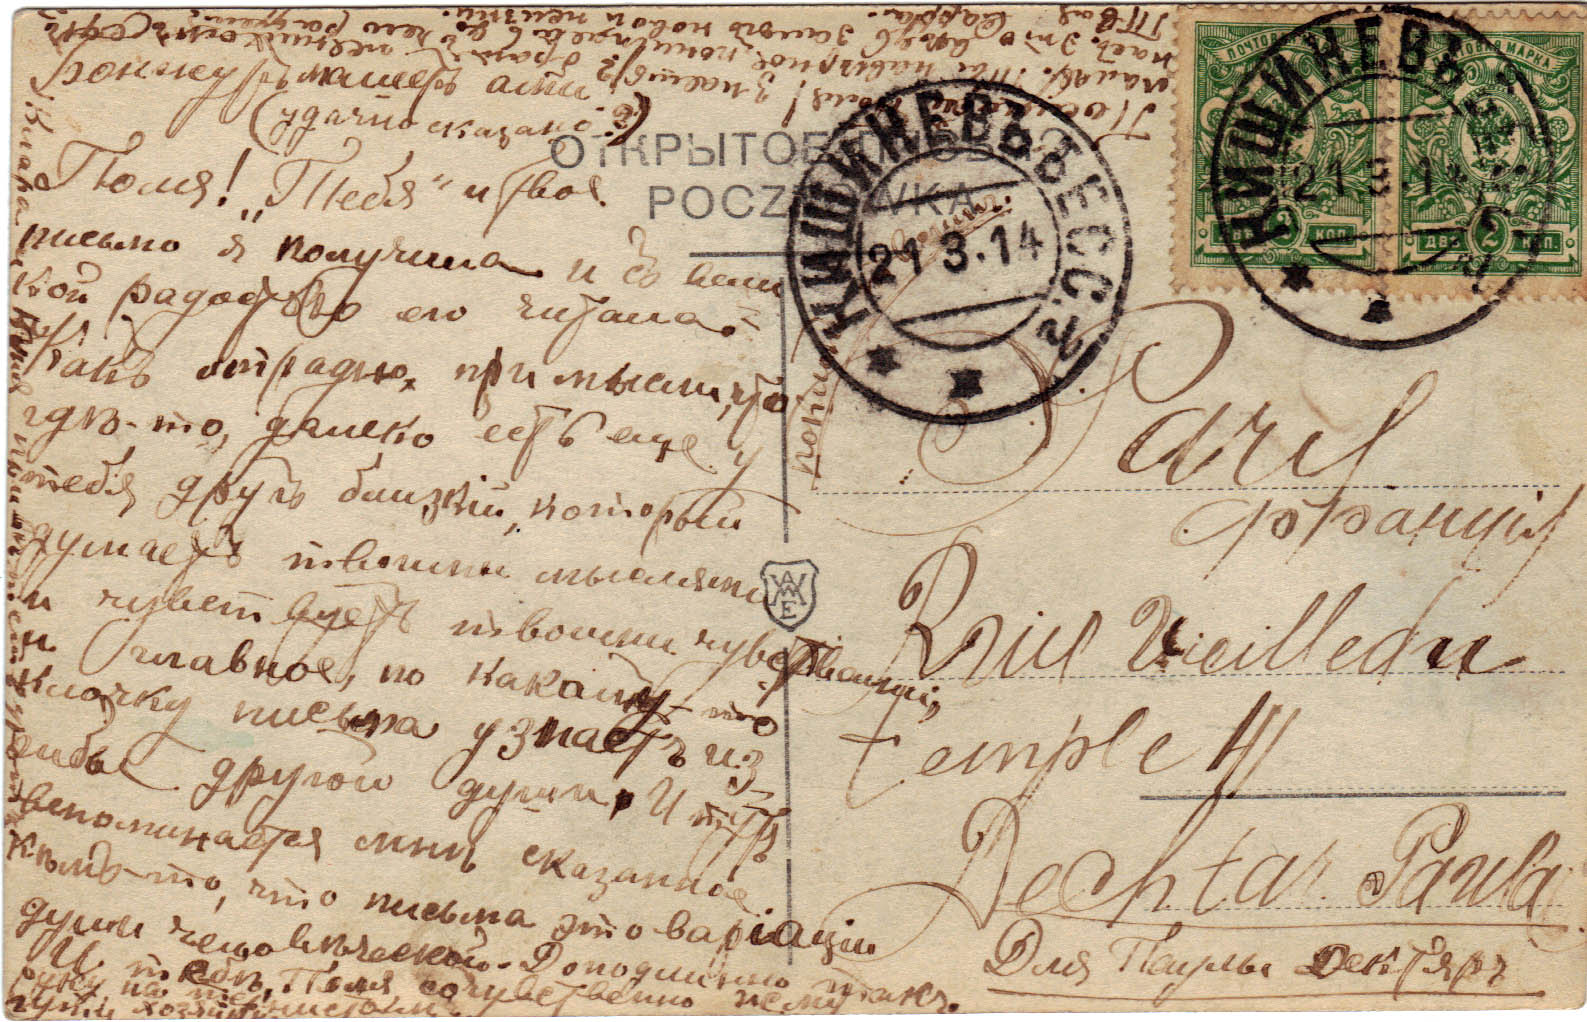 Postcard to Polya from Sarra March 21, 1914 B